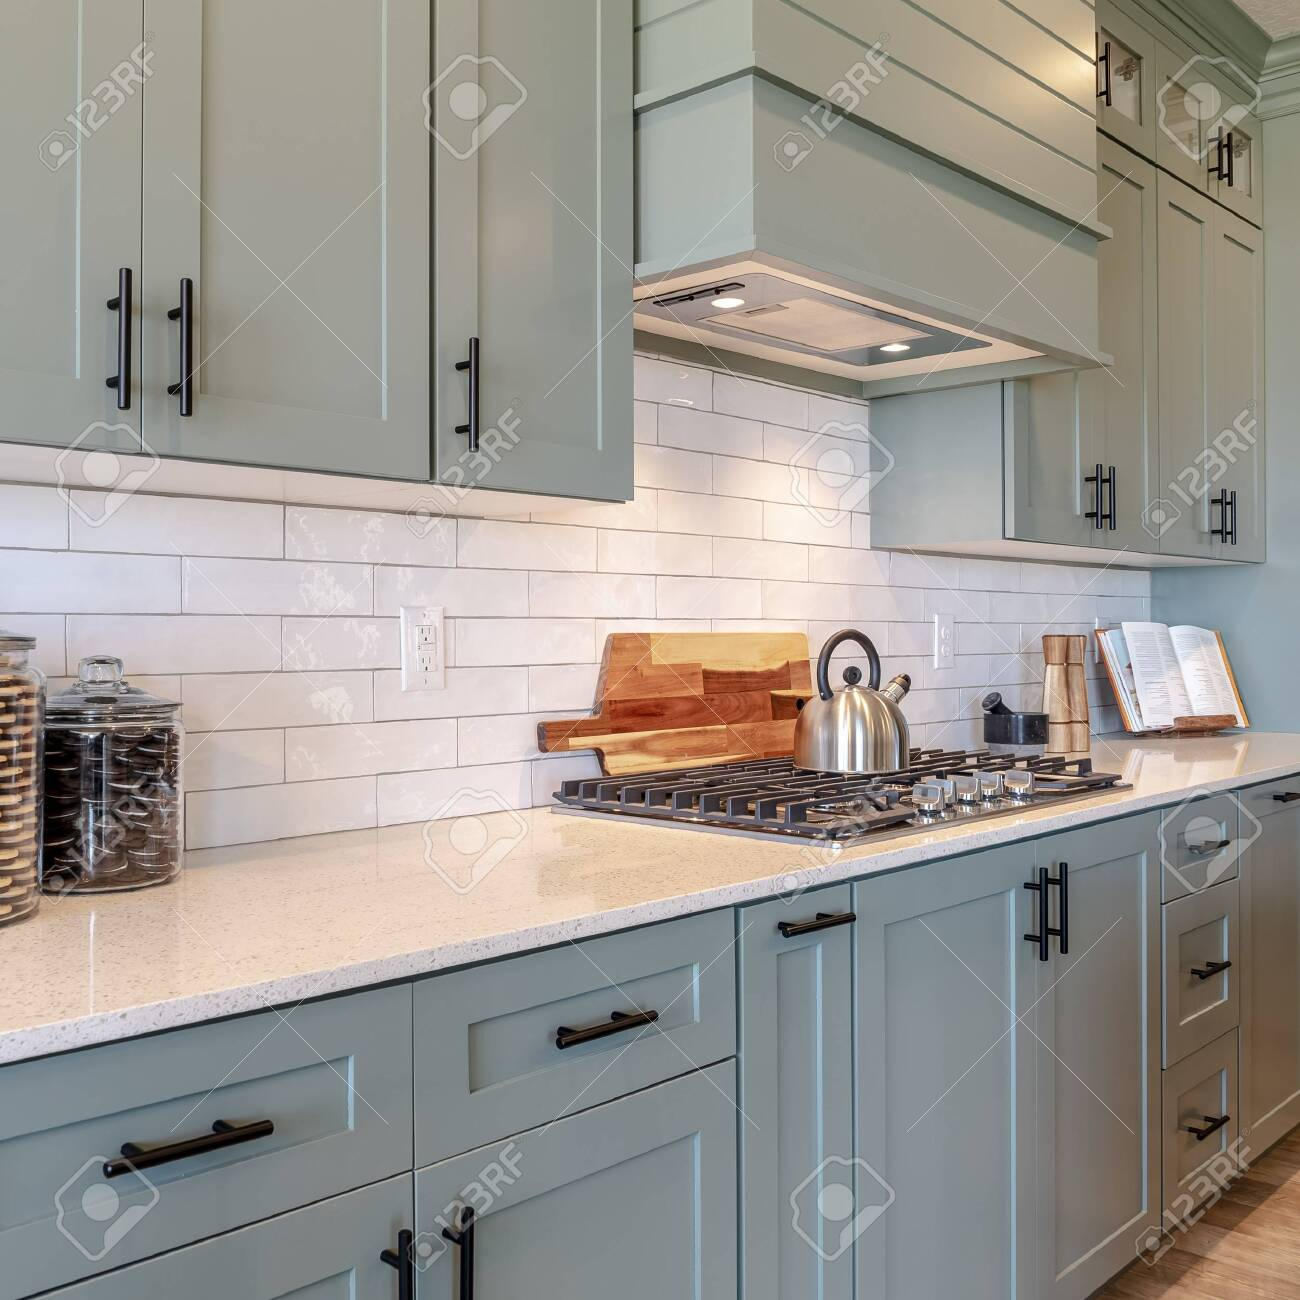 - Square Frame Kitchen Interior With Cooktop On White Counter Top